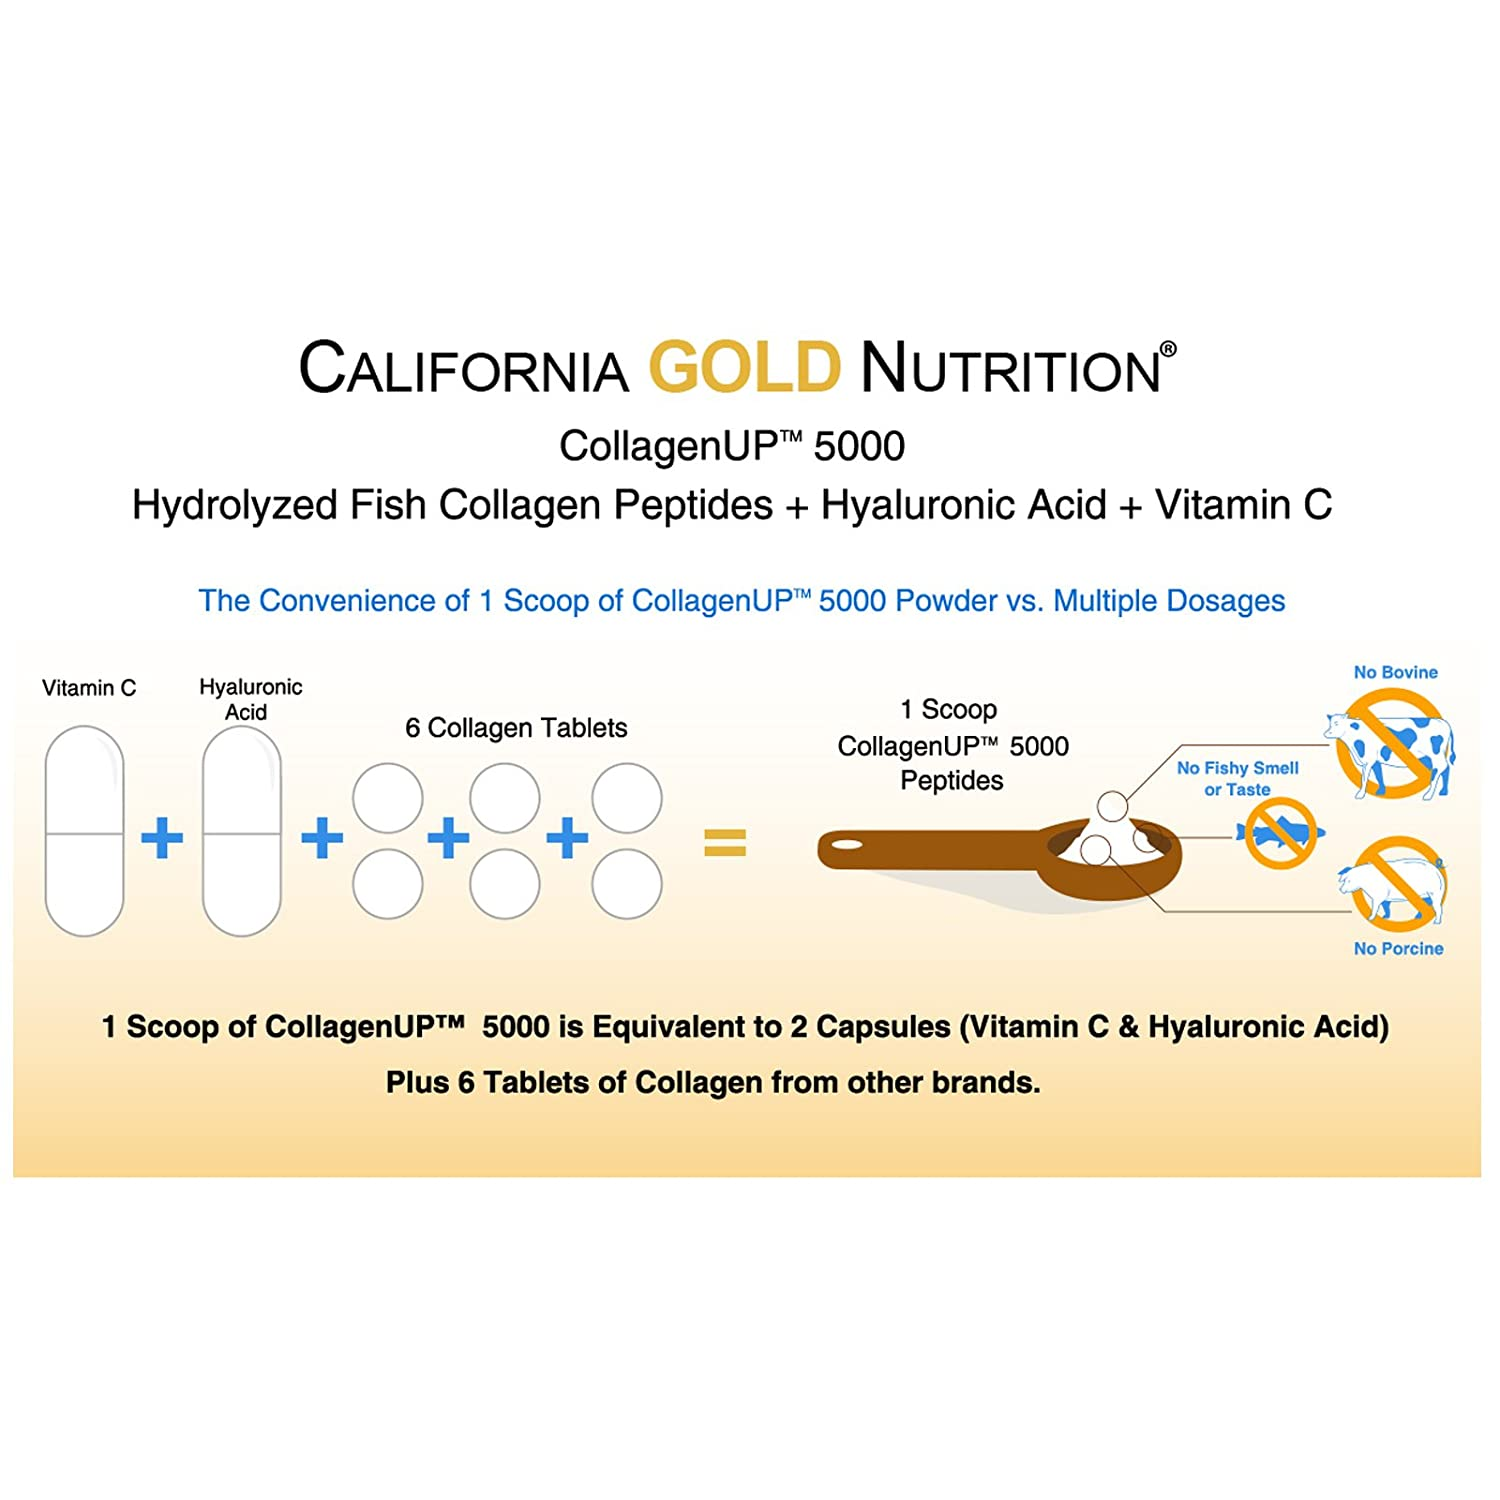 Amazon.com: California Gold Nutrition Collagen UP 5000 Marine-Sourced Collagen Peptides Hyaluronic Acid Vitamin C 16 36 oz 464 g: Health & Personal Care